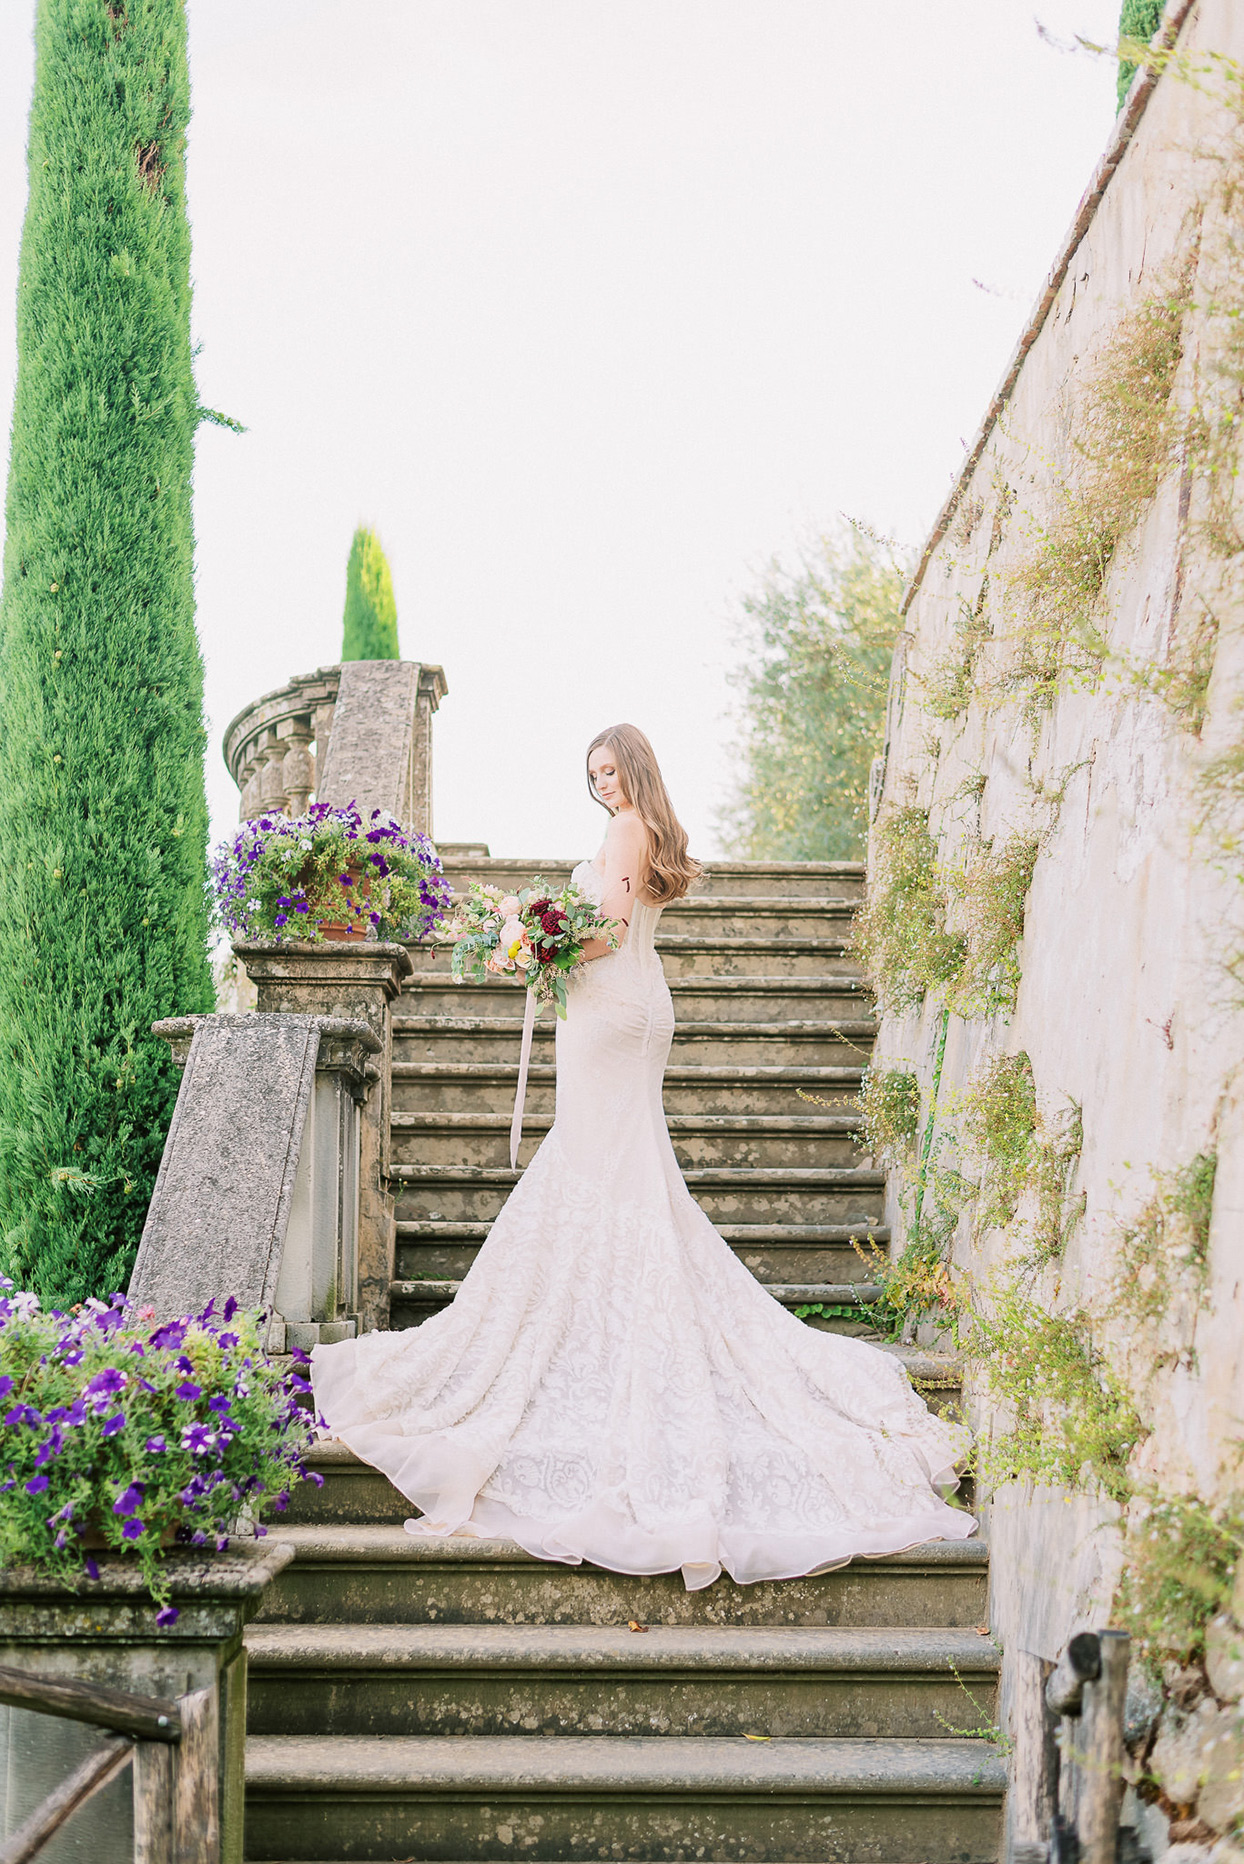 ally brian wedding bride on rustic stairs